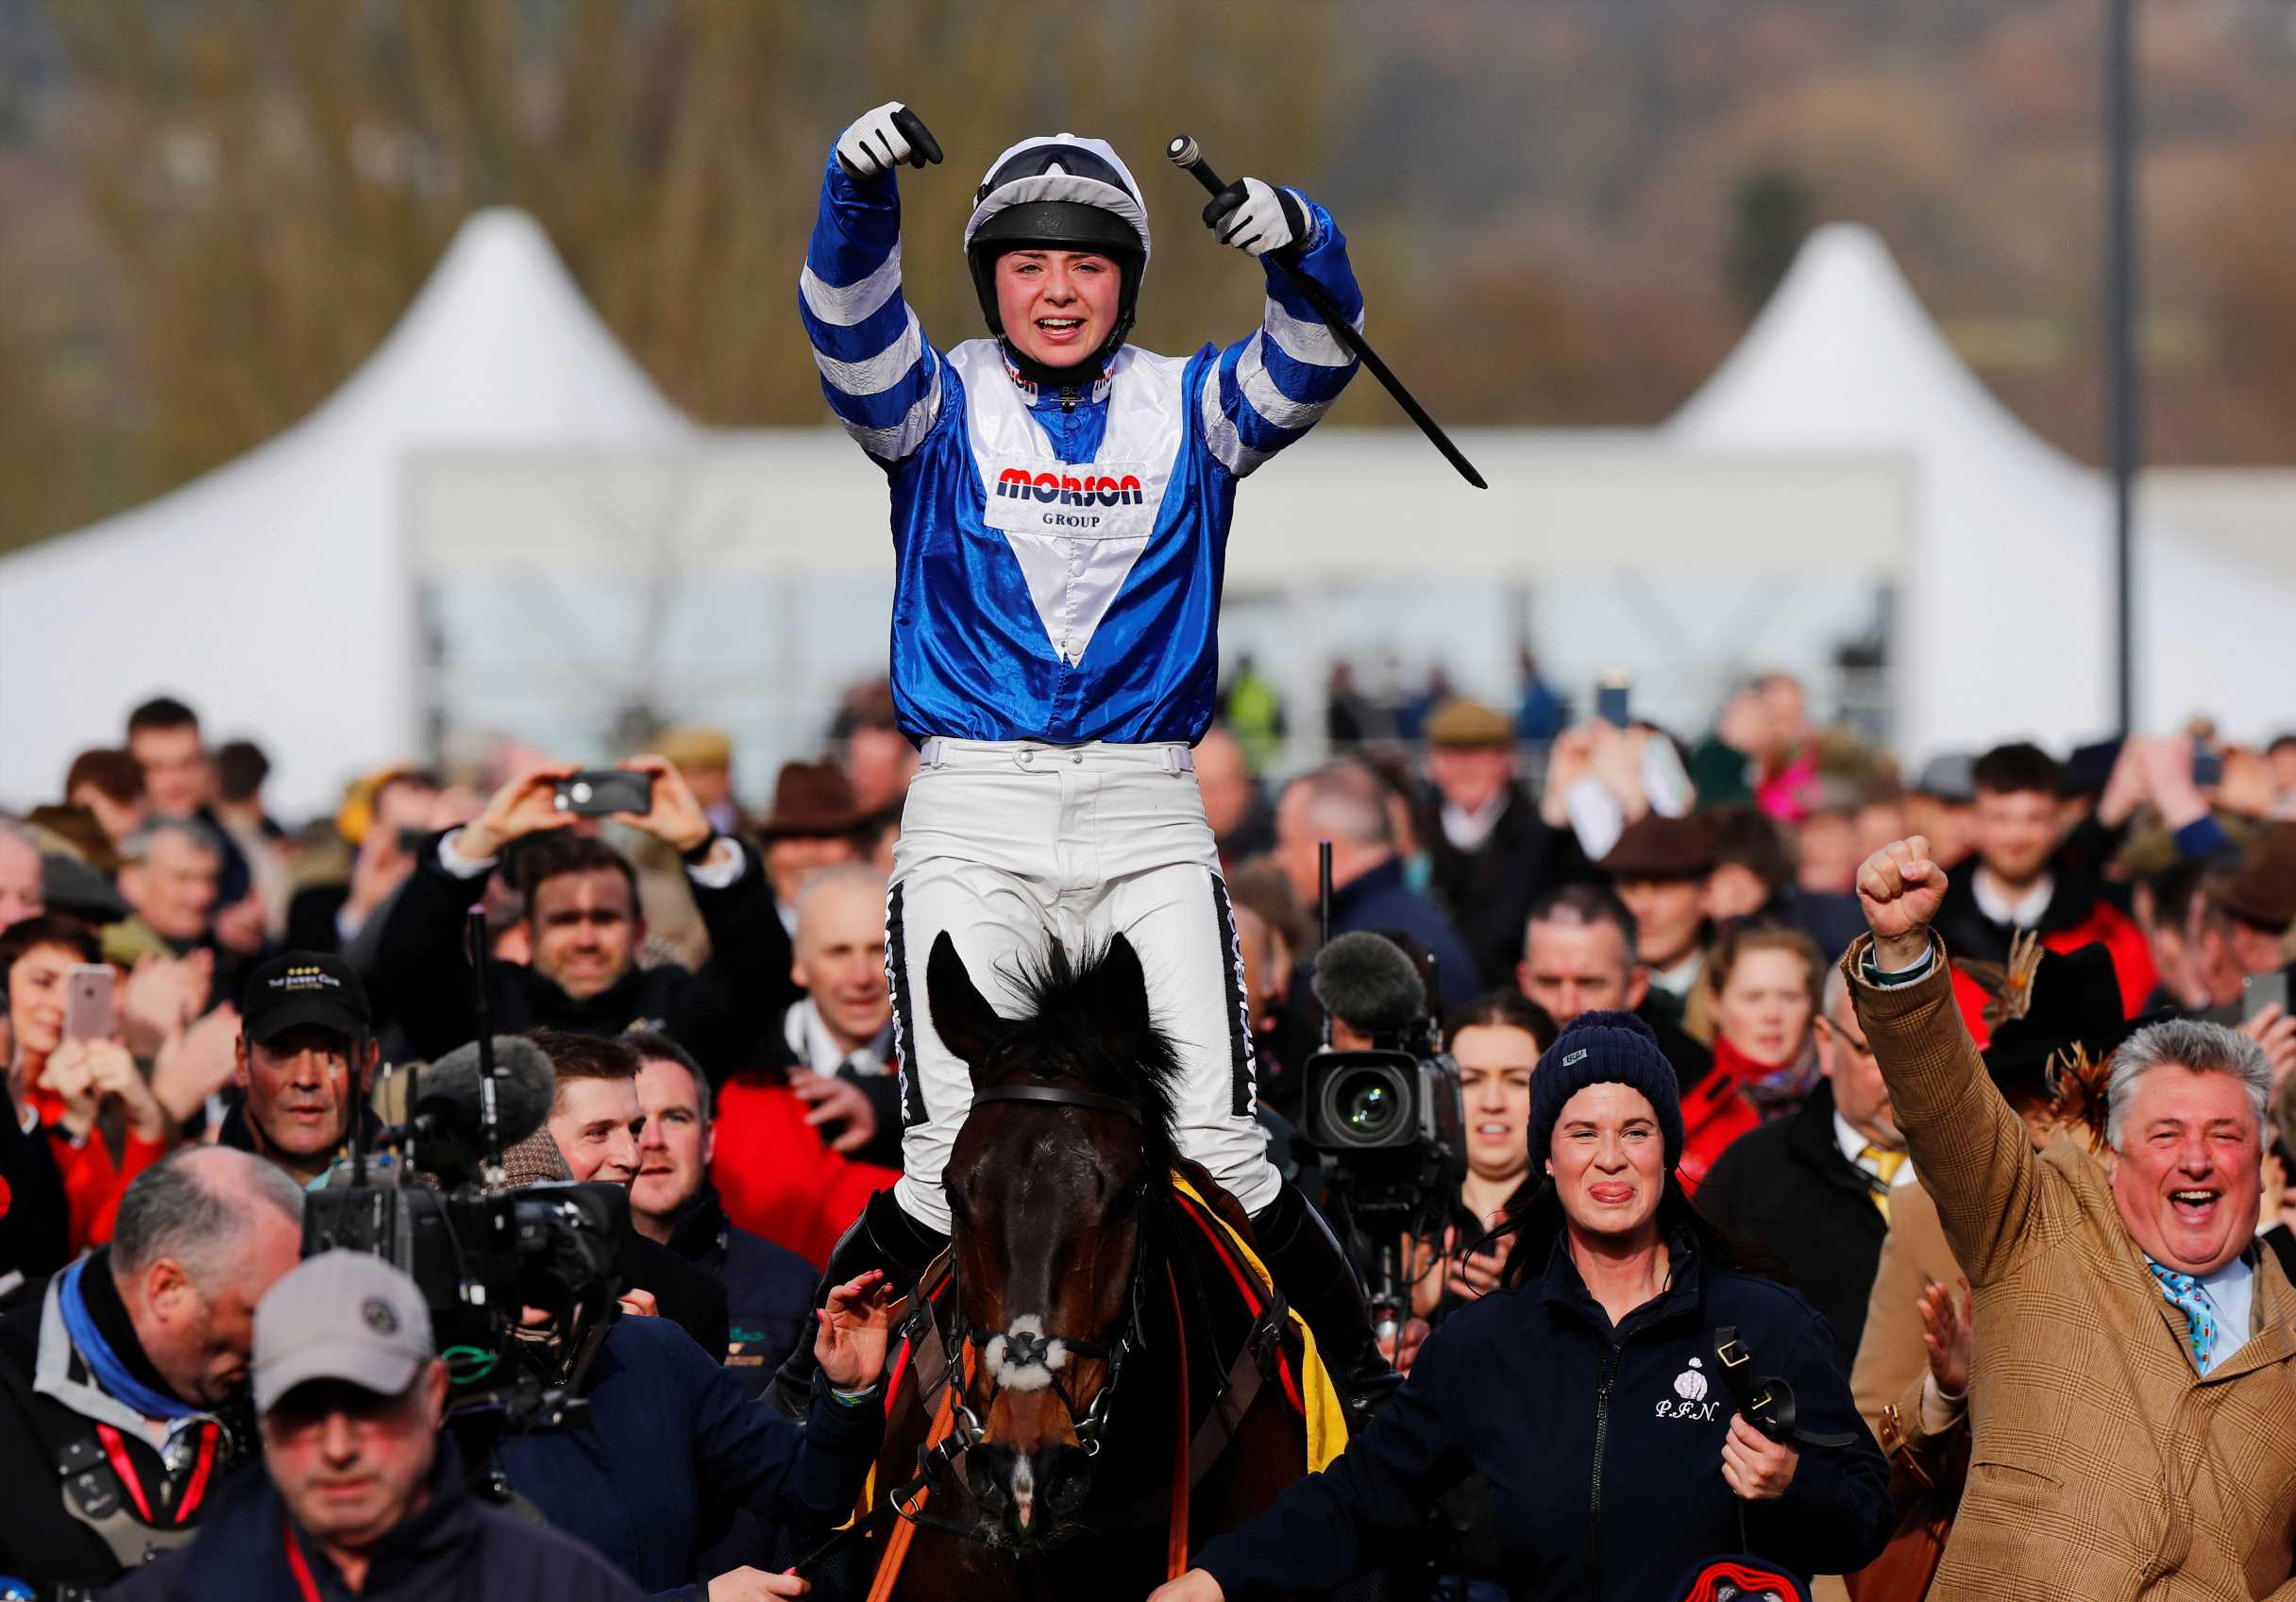 Cheltenham Festival 2019: Bryony Frost lifts Frodon home to win the Ryanair Chase